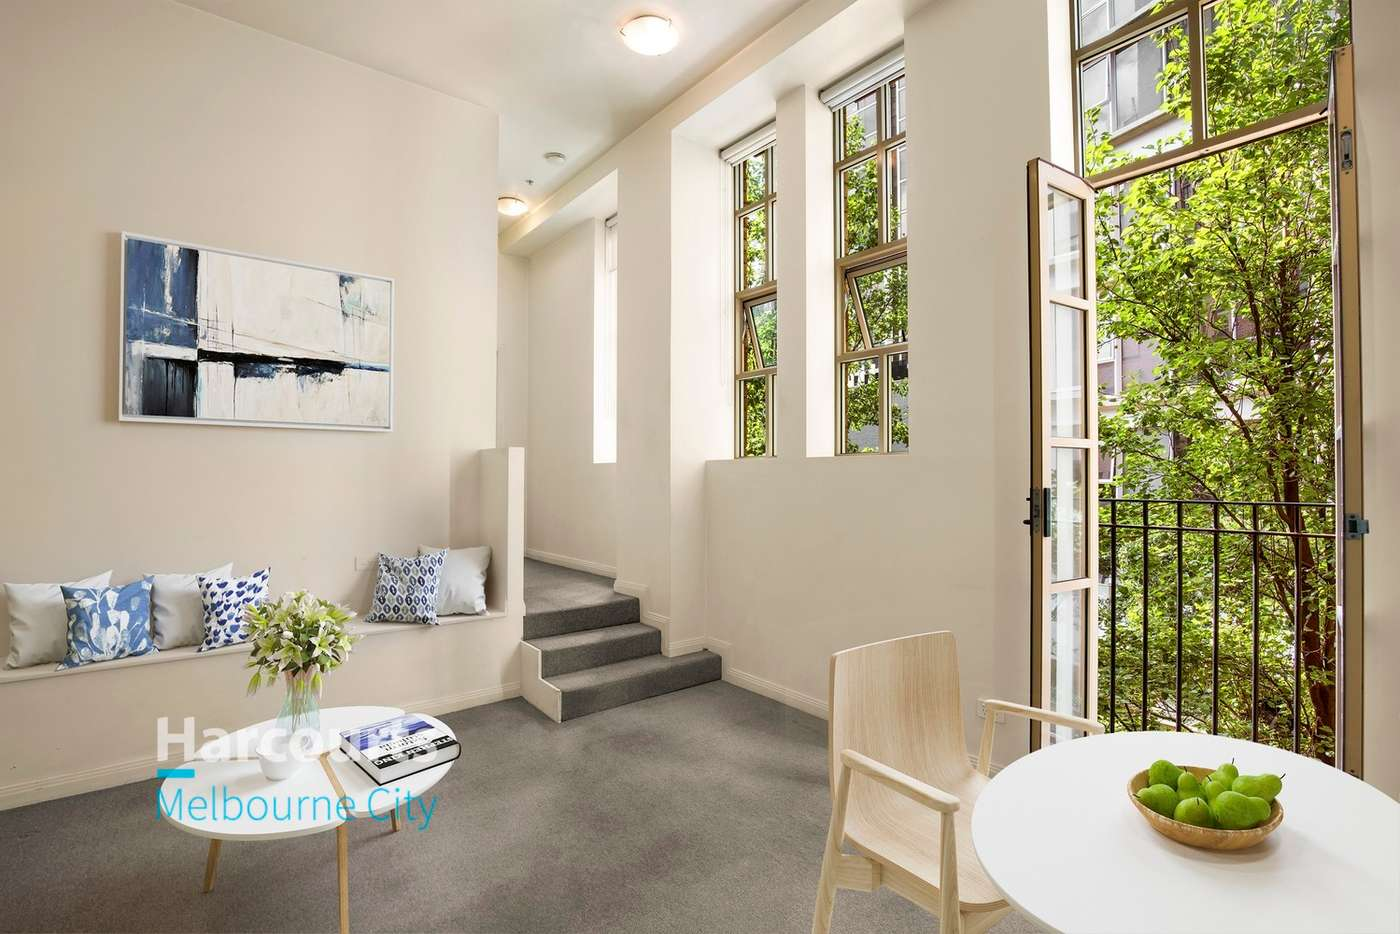 Main view of Homely apartment listing, 206/336 Russell Street, Melbourne VIC 3000